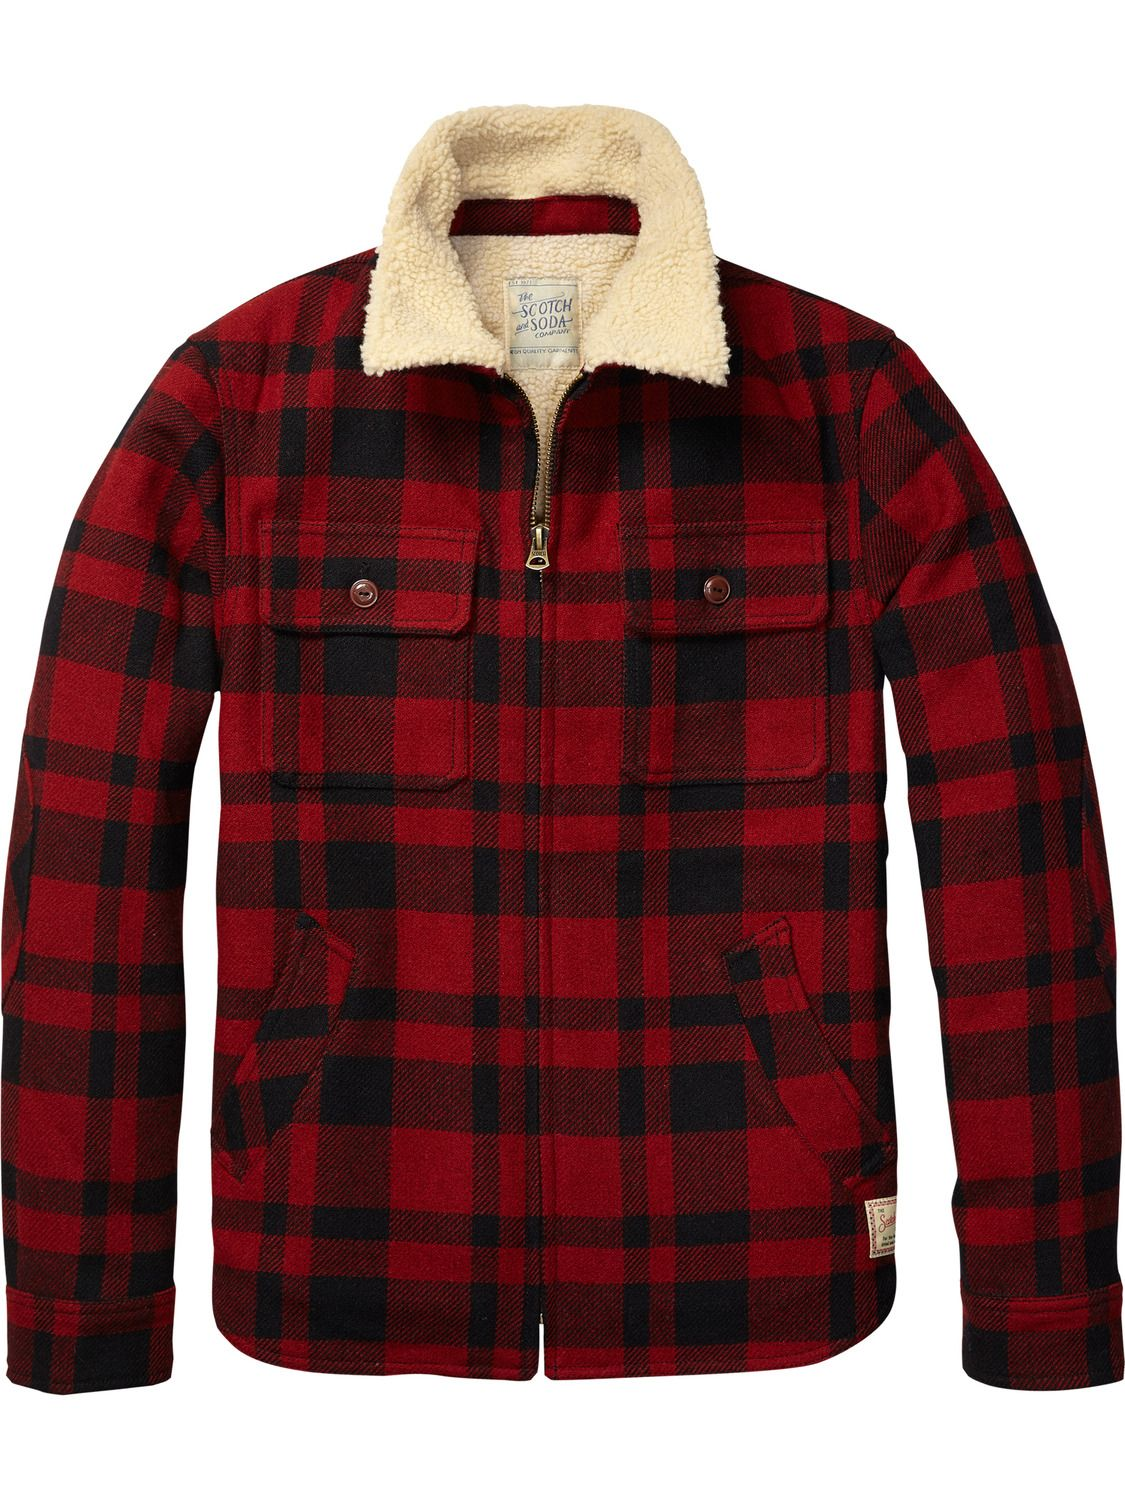 be0eb3a3a57ab Lumberjacket With Teddy Lining   Mens Clothing   Jackets at Scotch   Soda